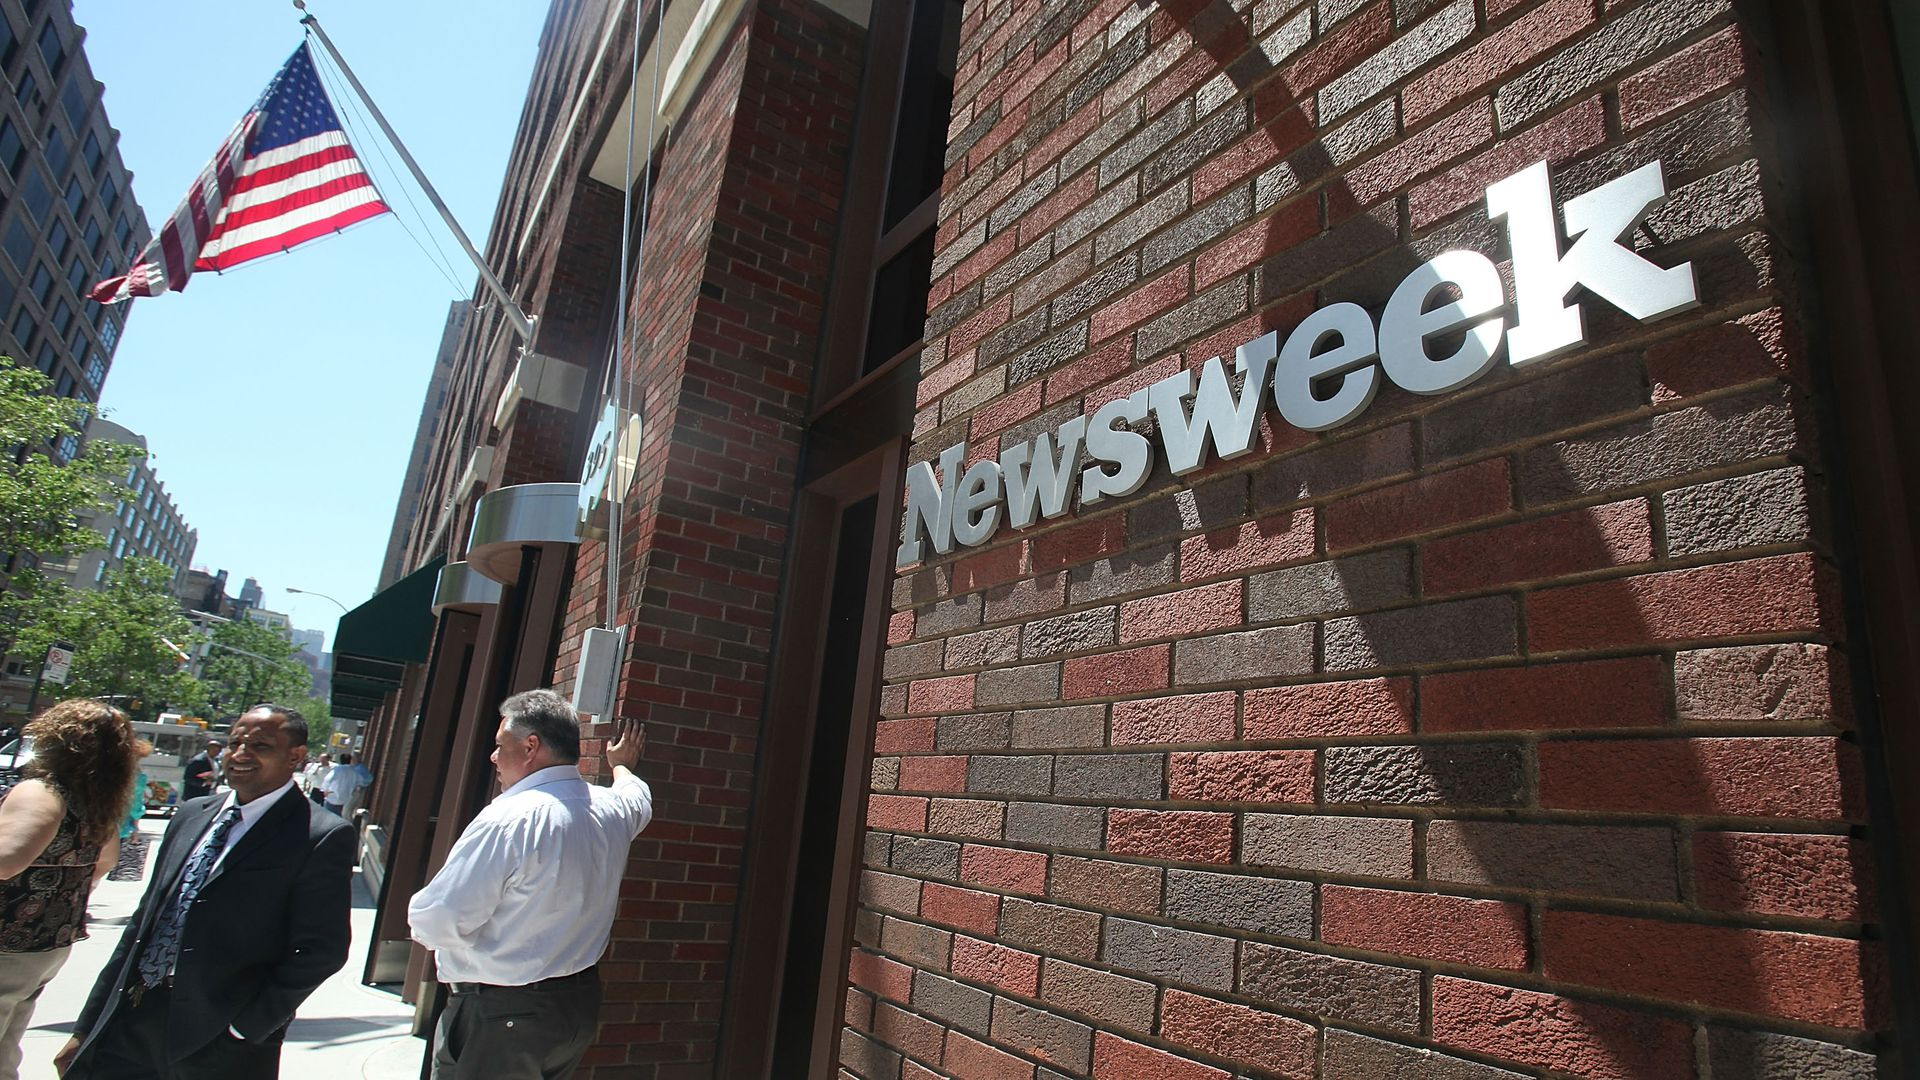 A sign bearing the Newsweek logo